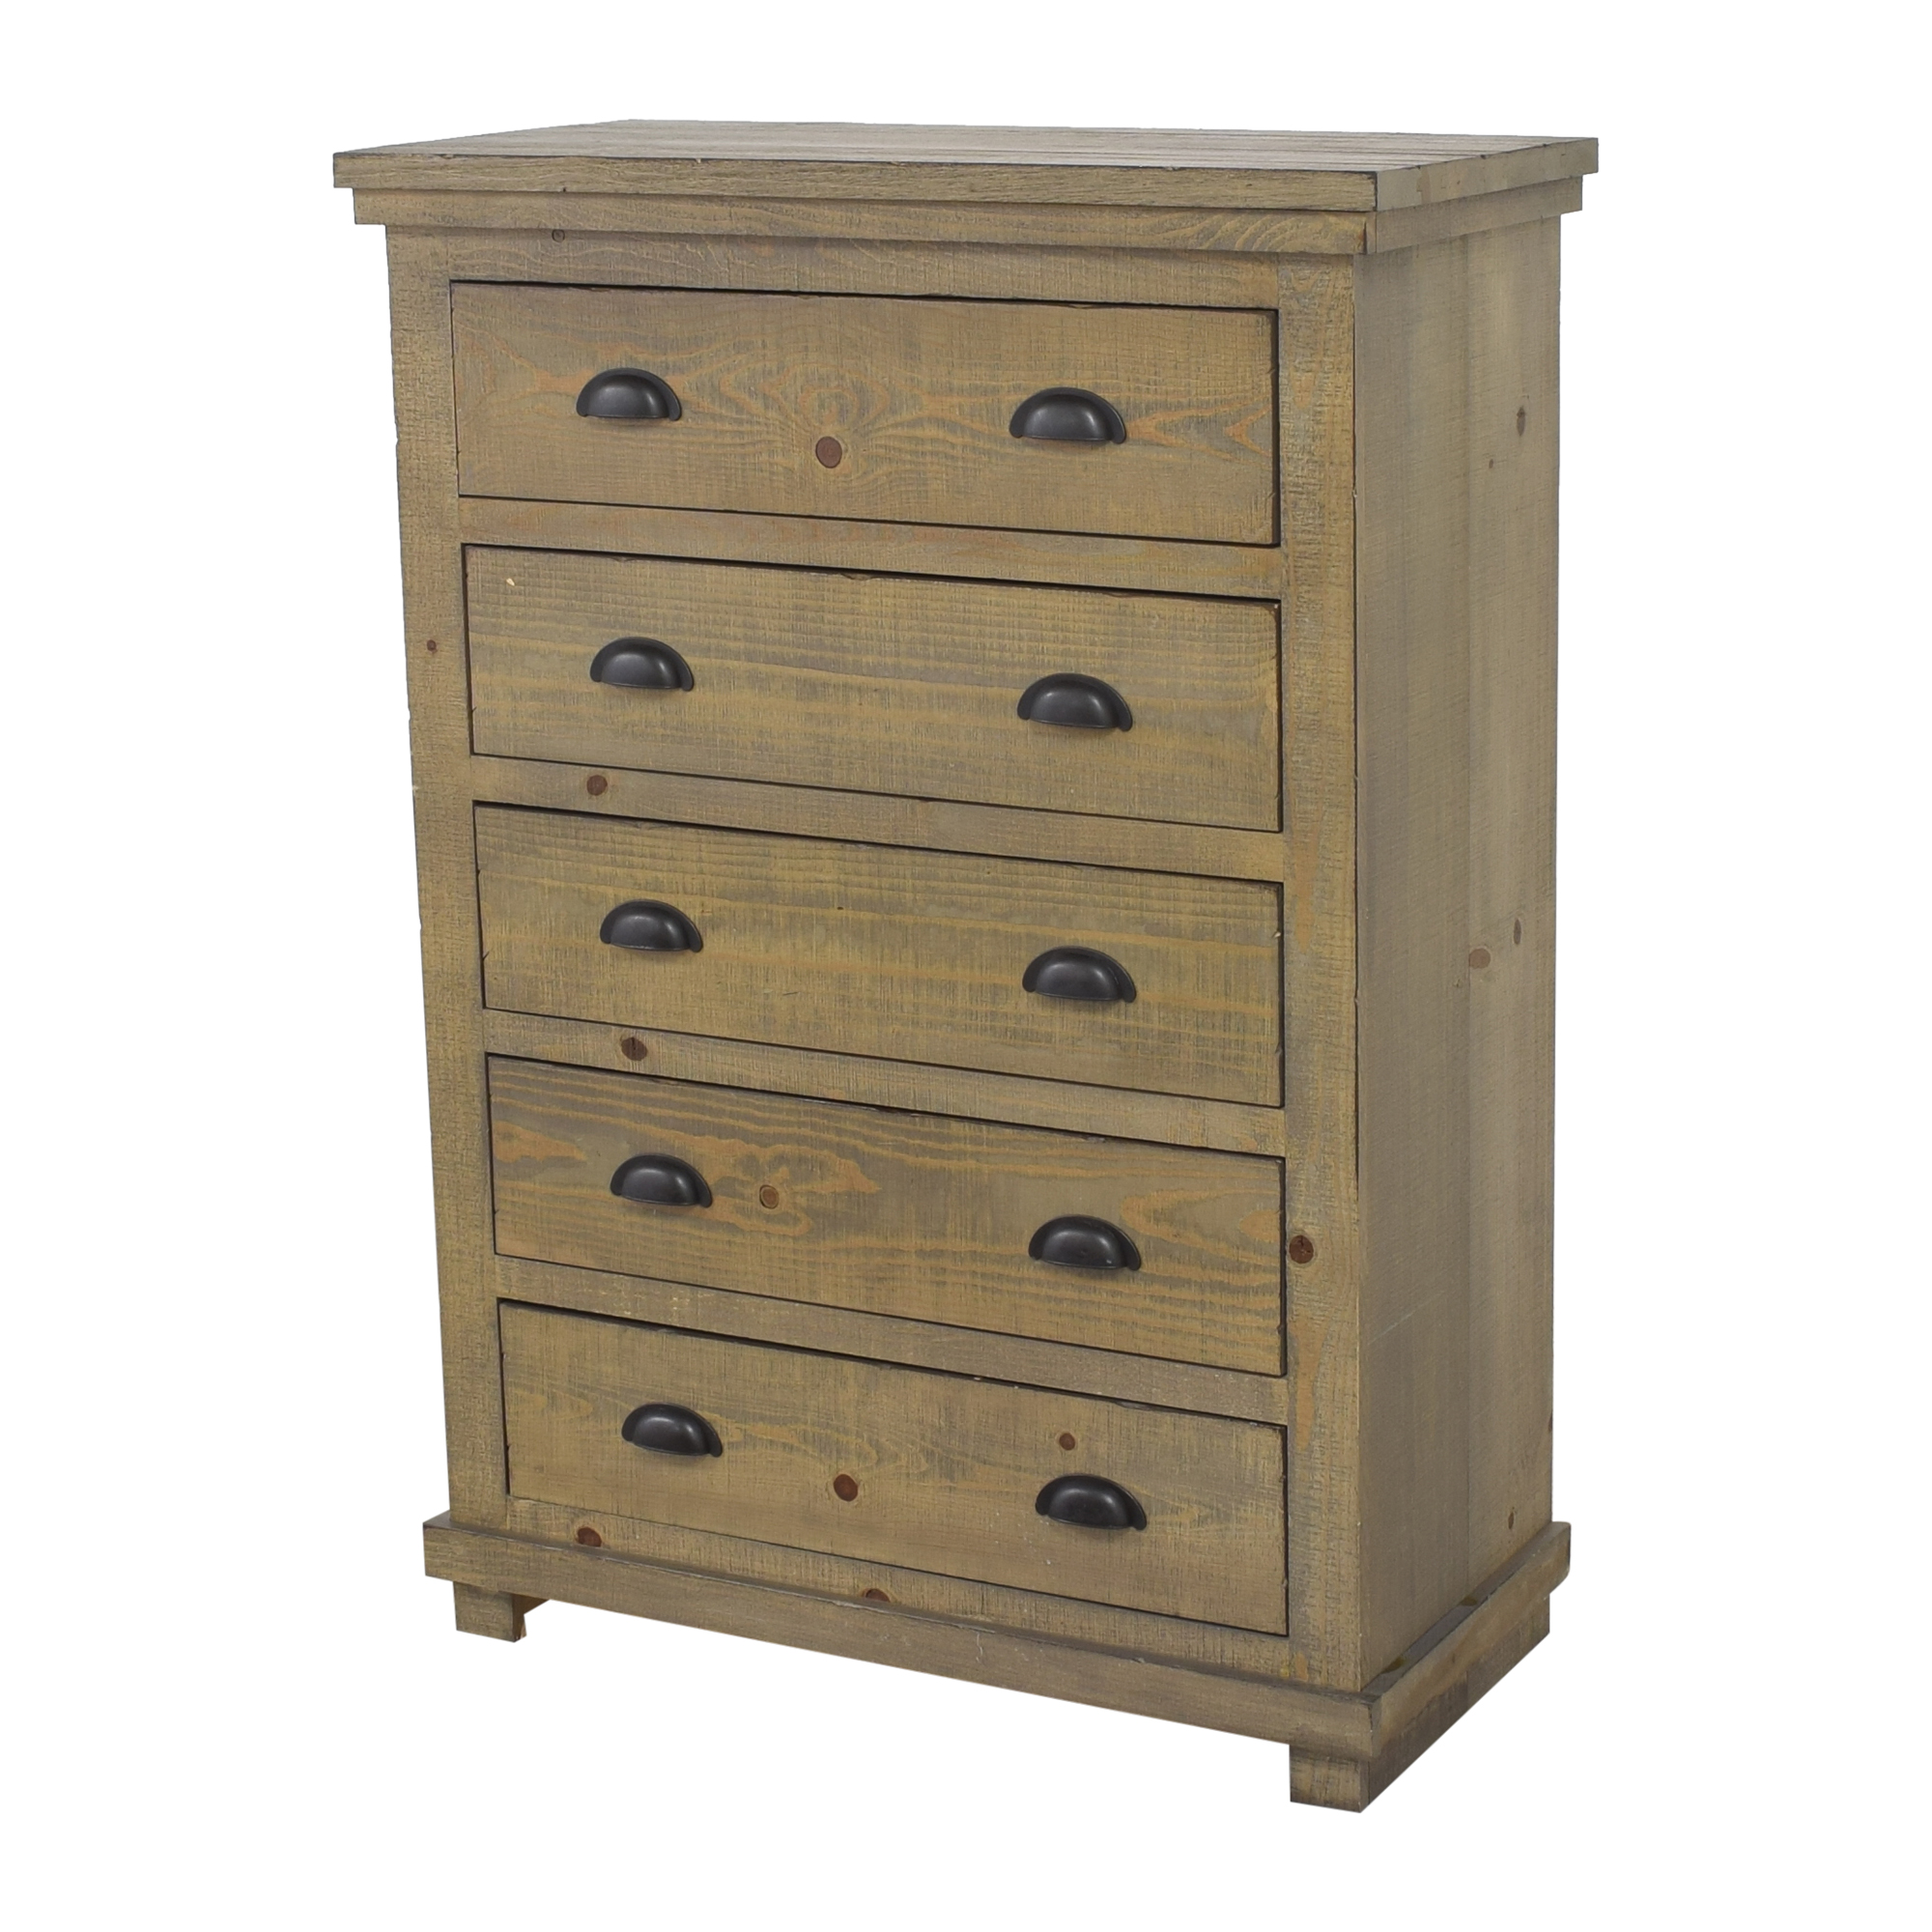 buy Progressive Furniture Progressive Furniture Willow Five Drawer Chest online